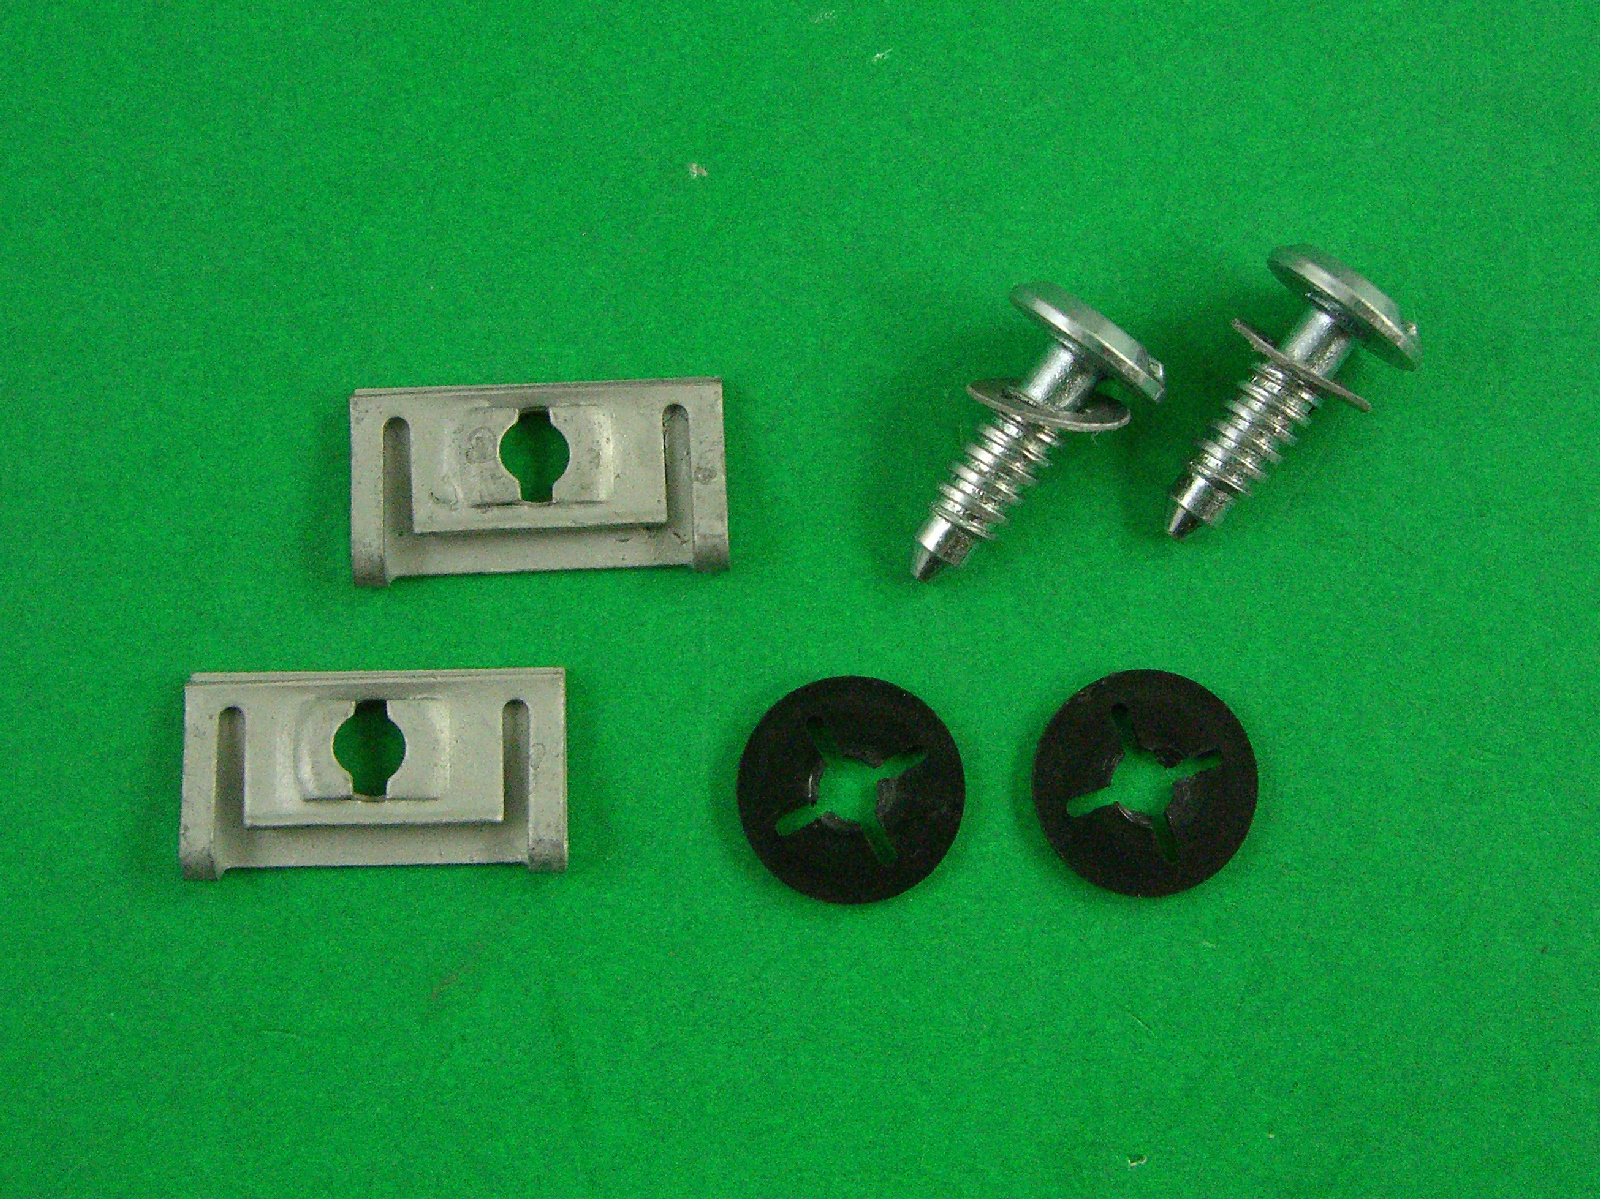 Atwood 33847 Hydro Flame RV Furnace Door Catch Screw Type 85-II 89-I \u0026 II & Atwood 33847 Hydro Flame RV Furnace Door Catch Screw Type 85-II 89 ...